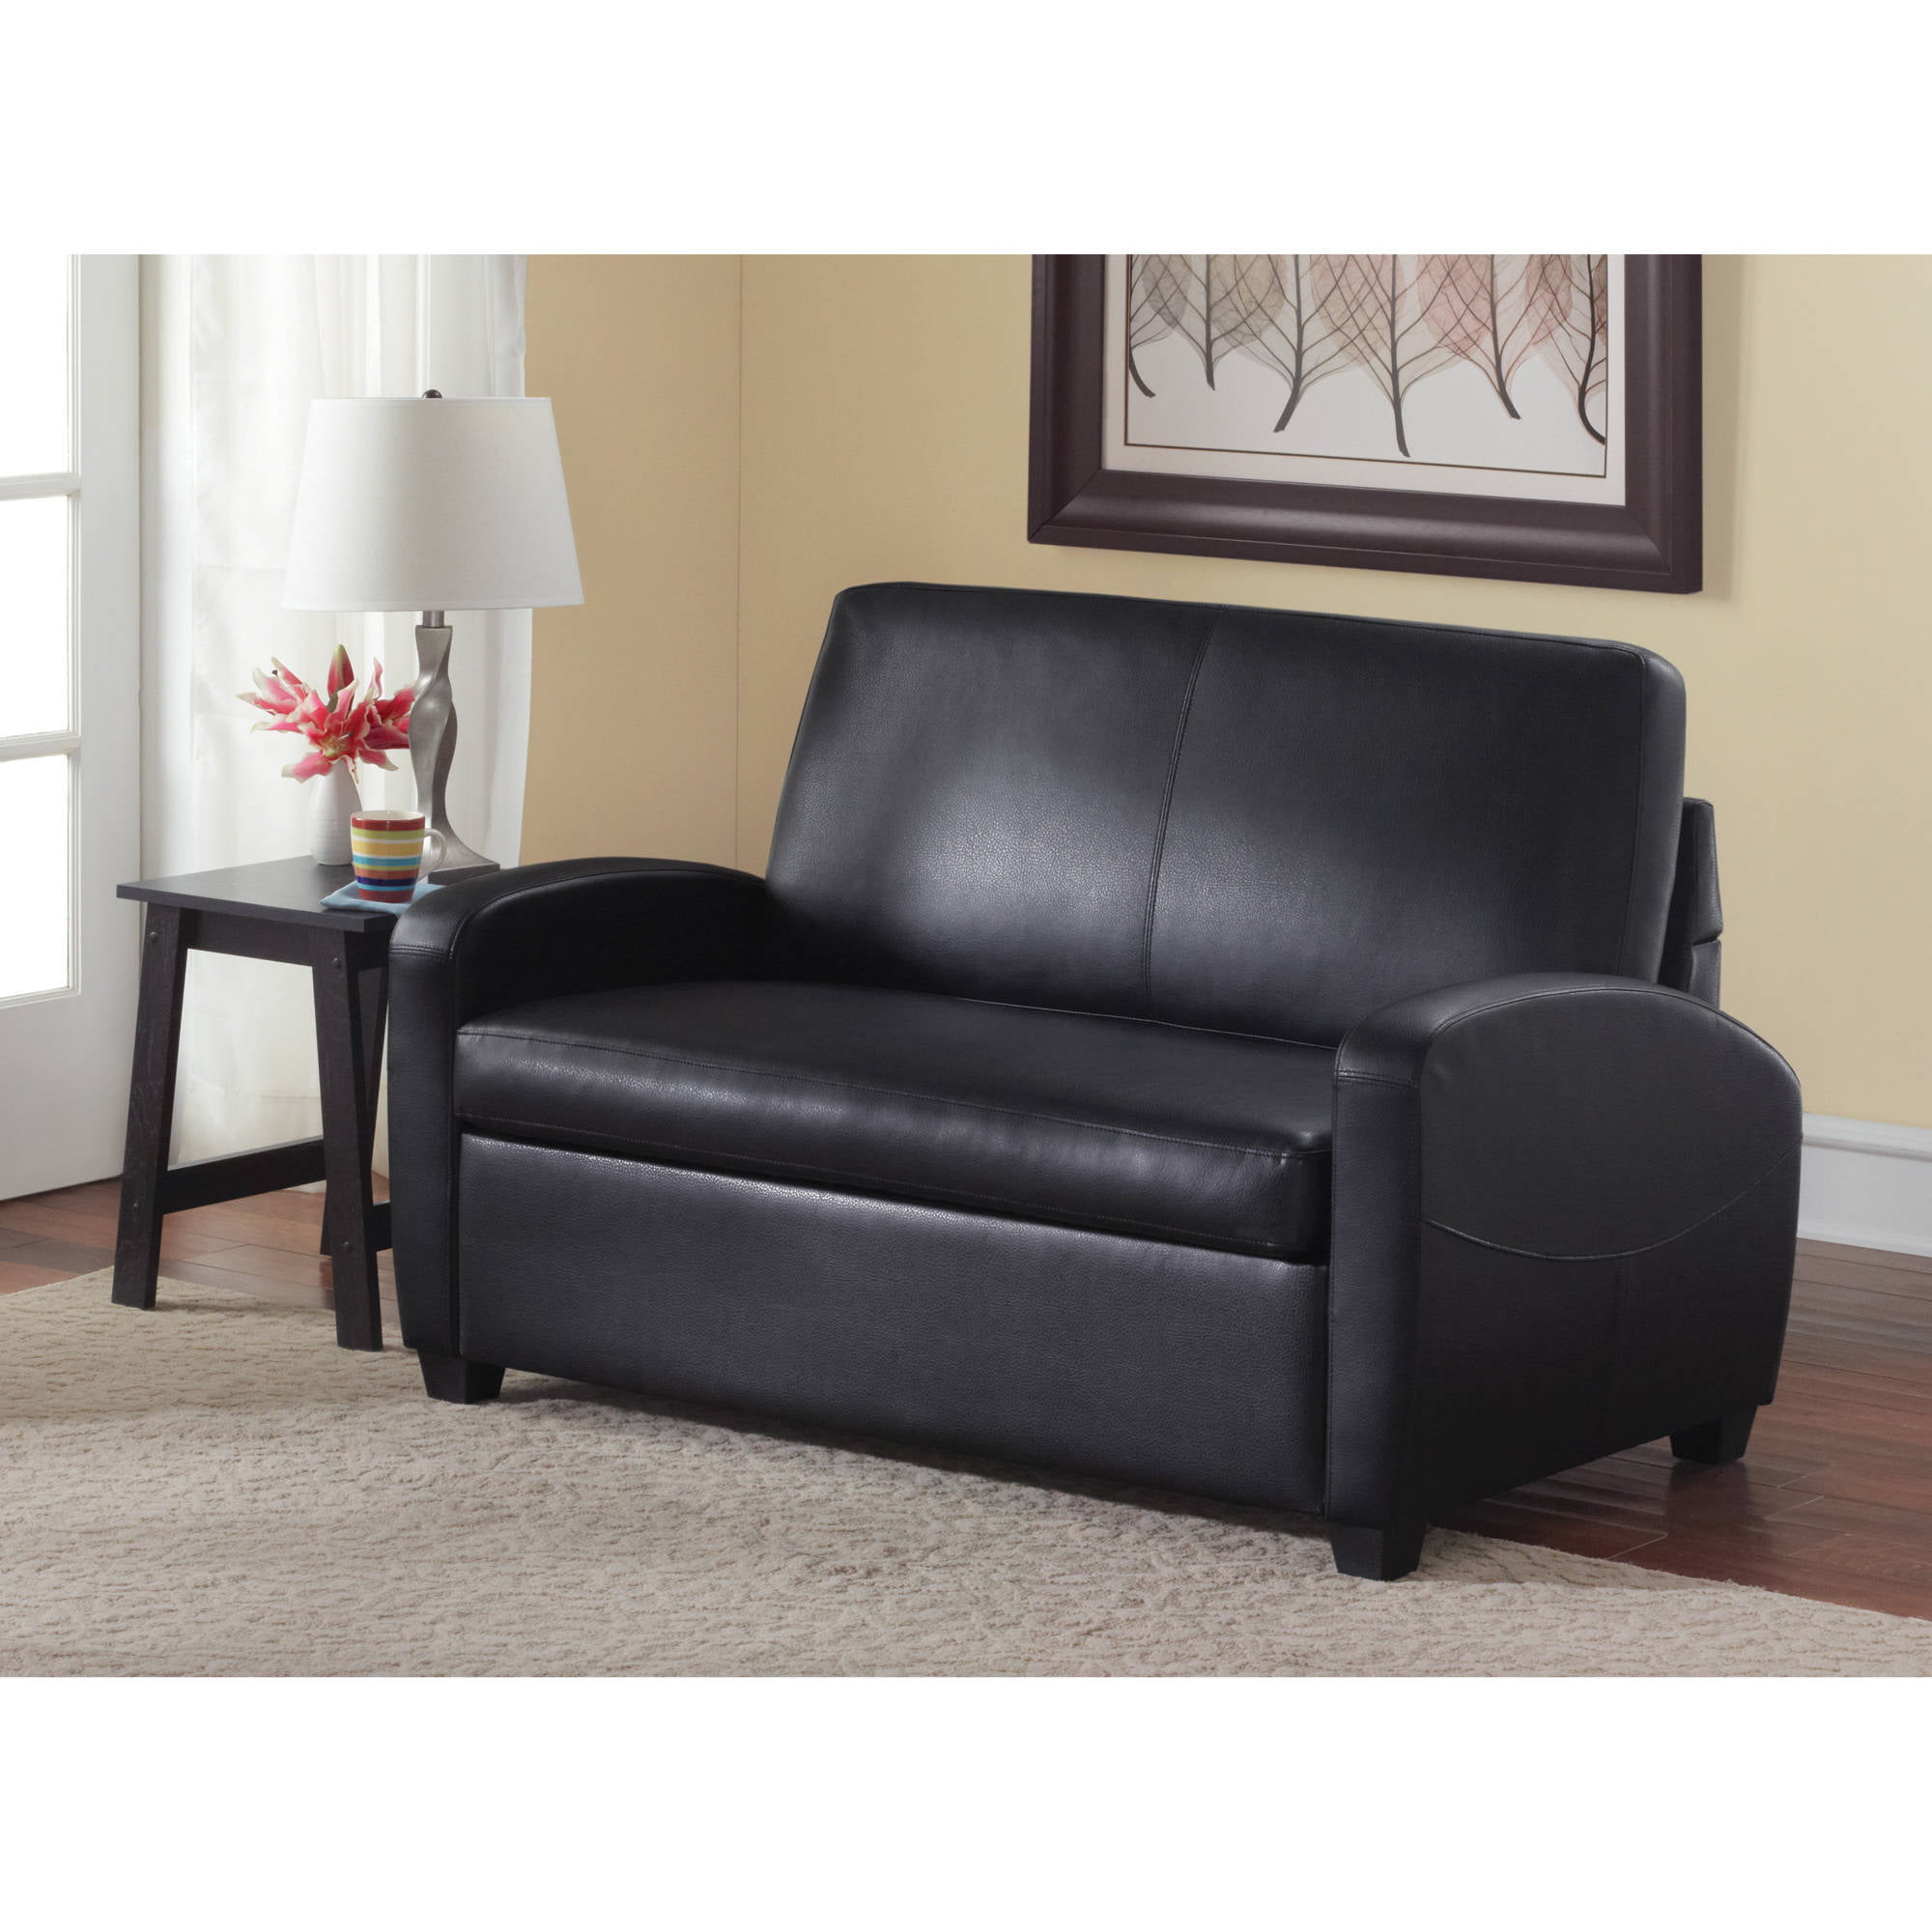 "Mainstays 54"" Loveseat Sleeper Black Walmart"